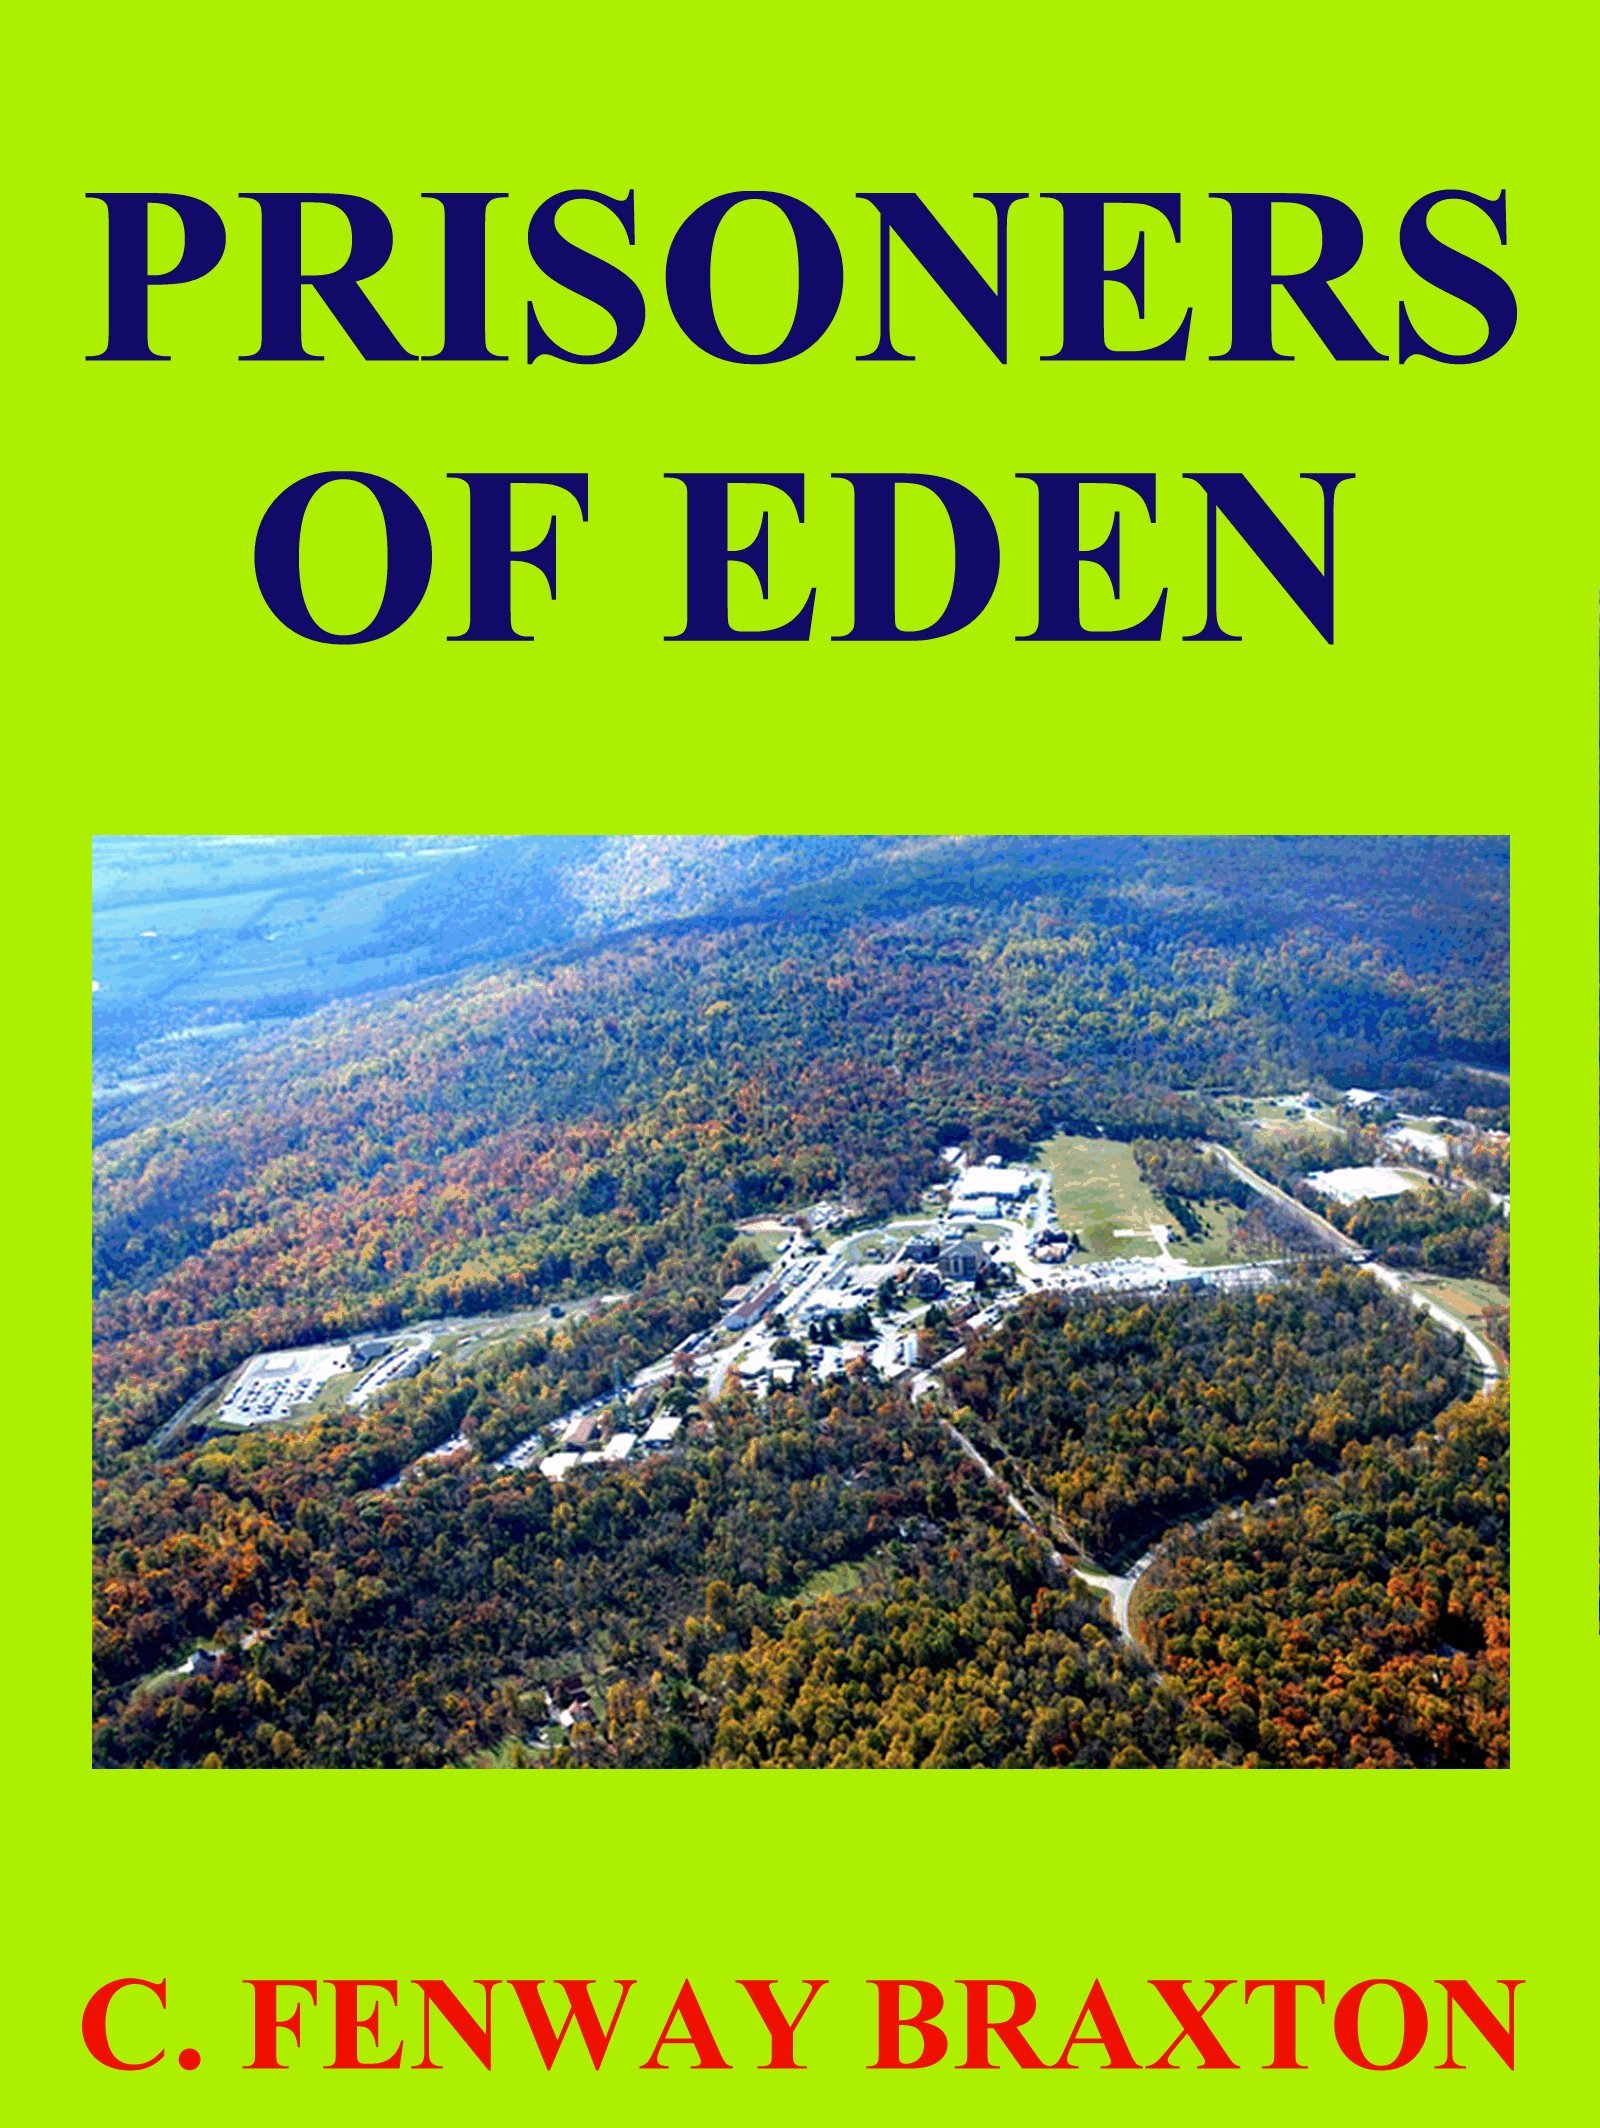 Prisoners of Eden